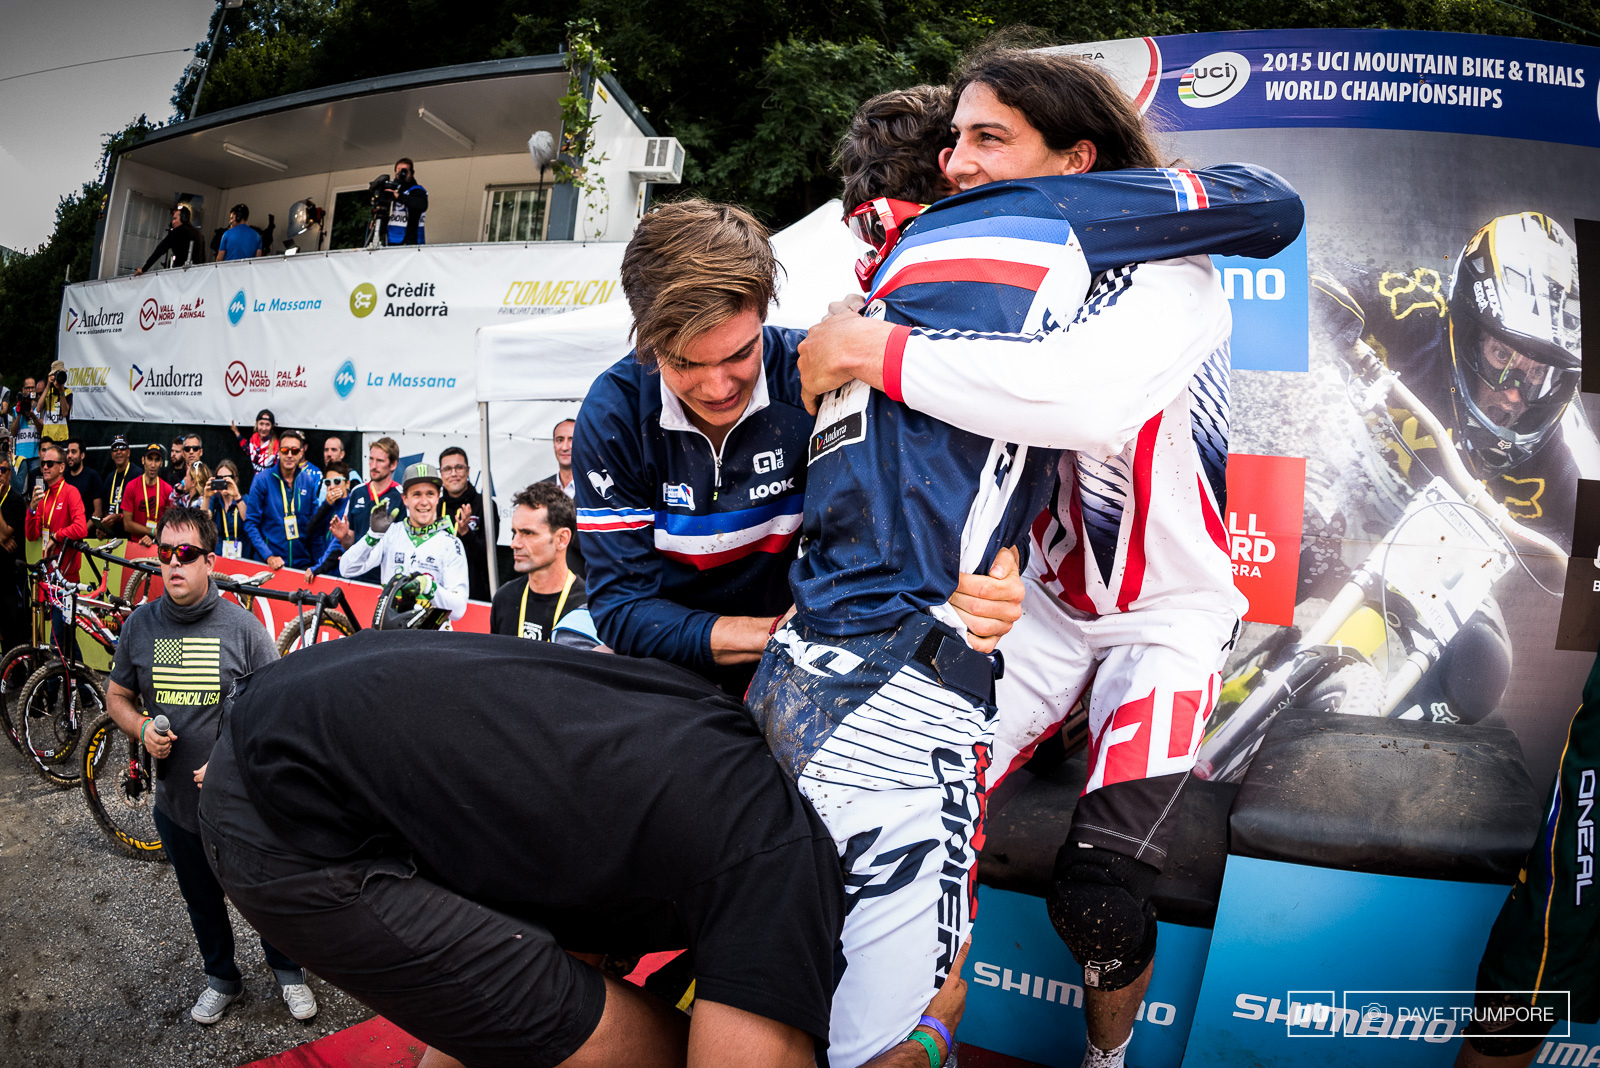 Ratboy gives Loic a hug as Cedric Gracia attempts to lift him up on his shoulders.